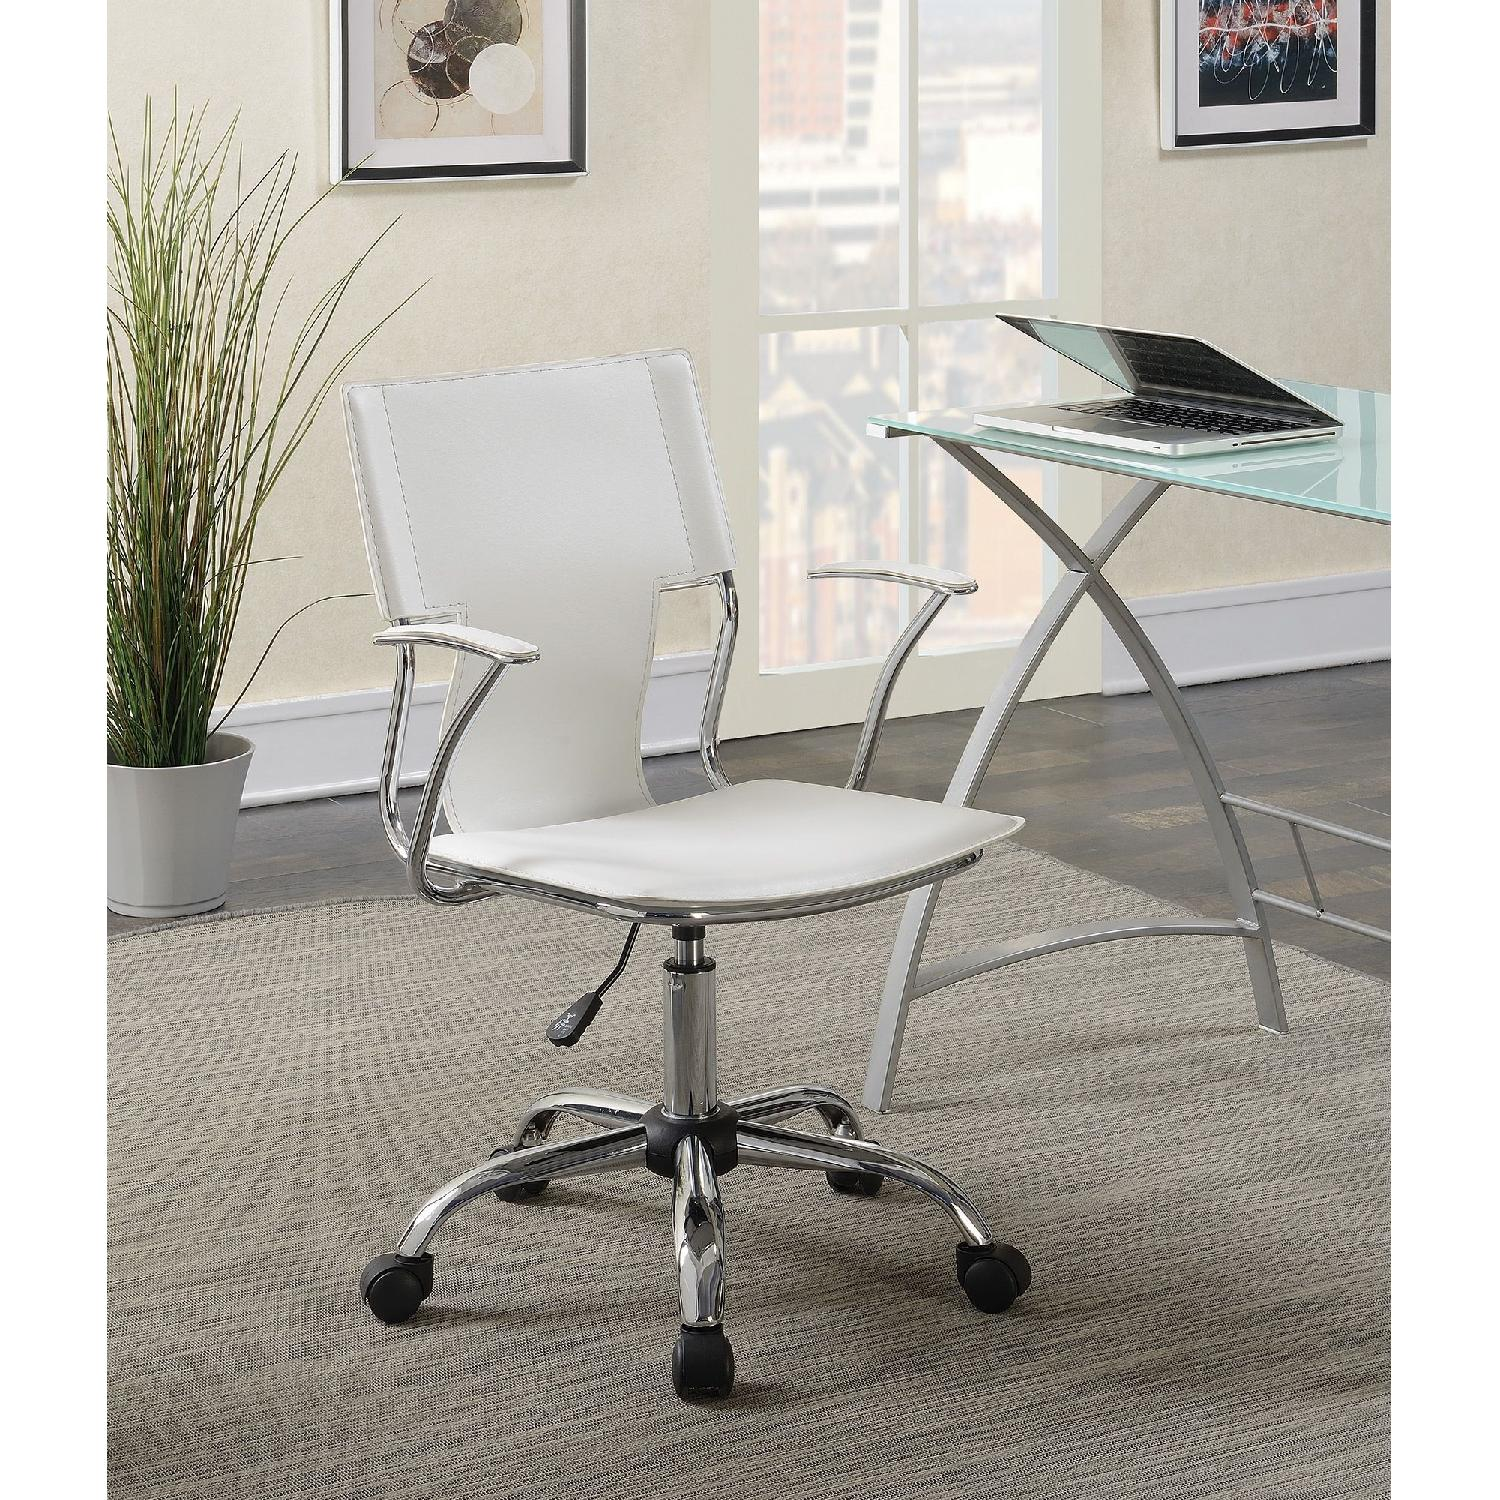 Modern Office Chair in White Leatherette w/ Chrome Legs - image-5